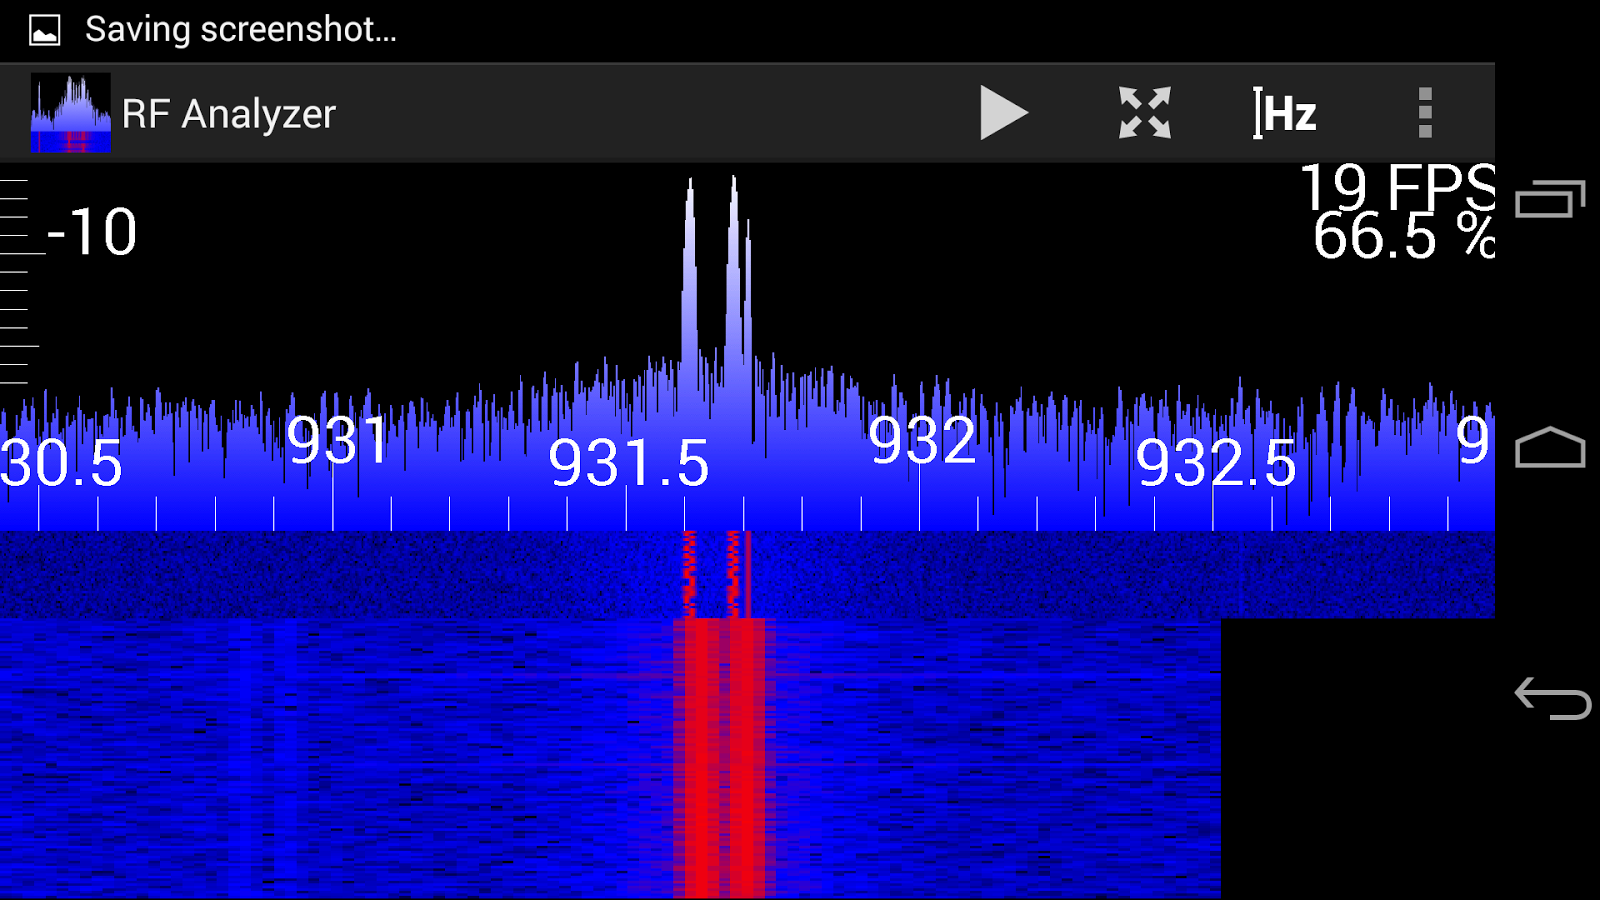 Mantz Tech: RF Analyzer - Explore the frequency spectrum with the